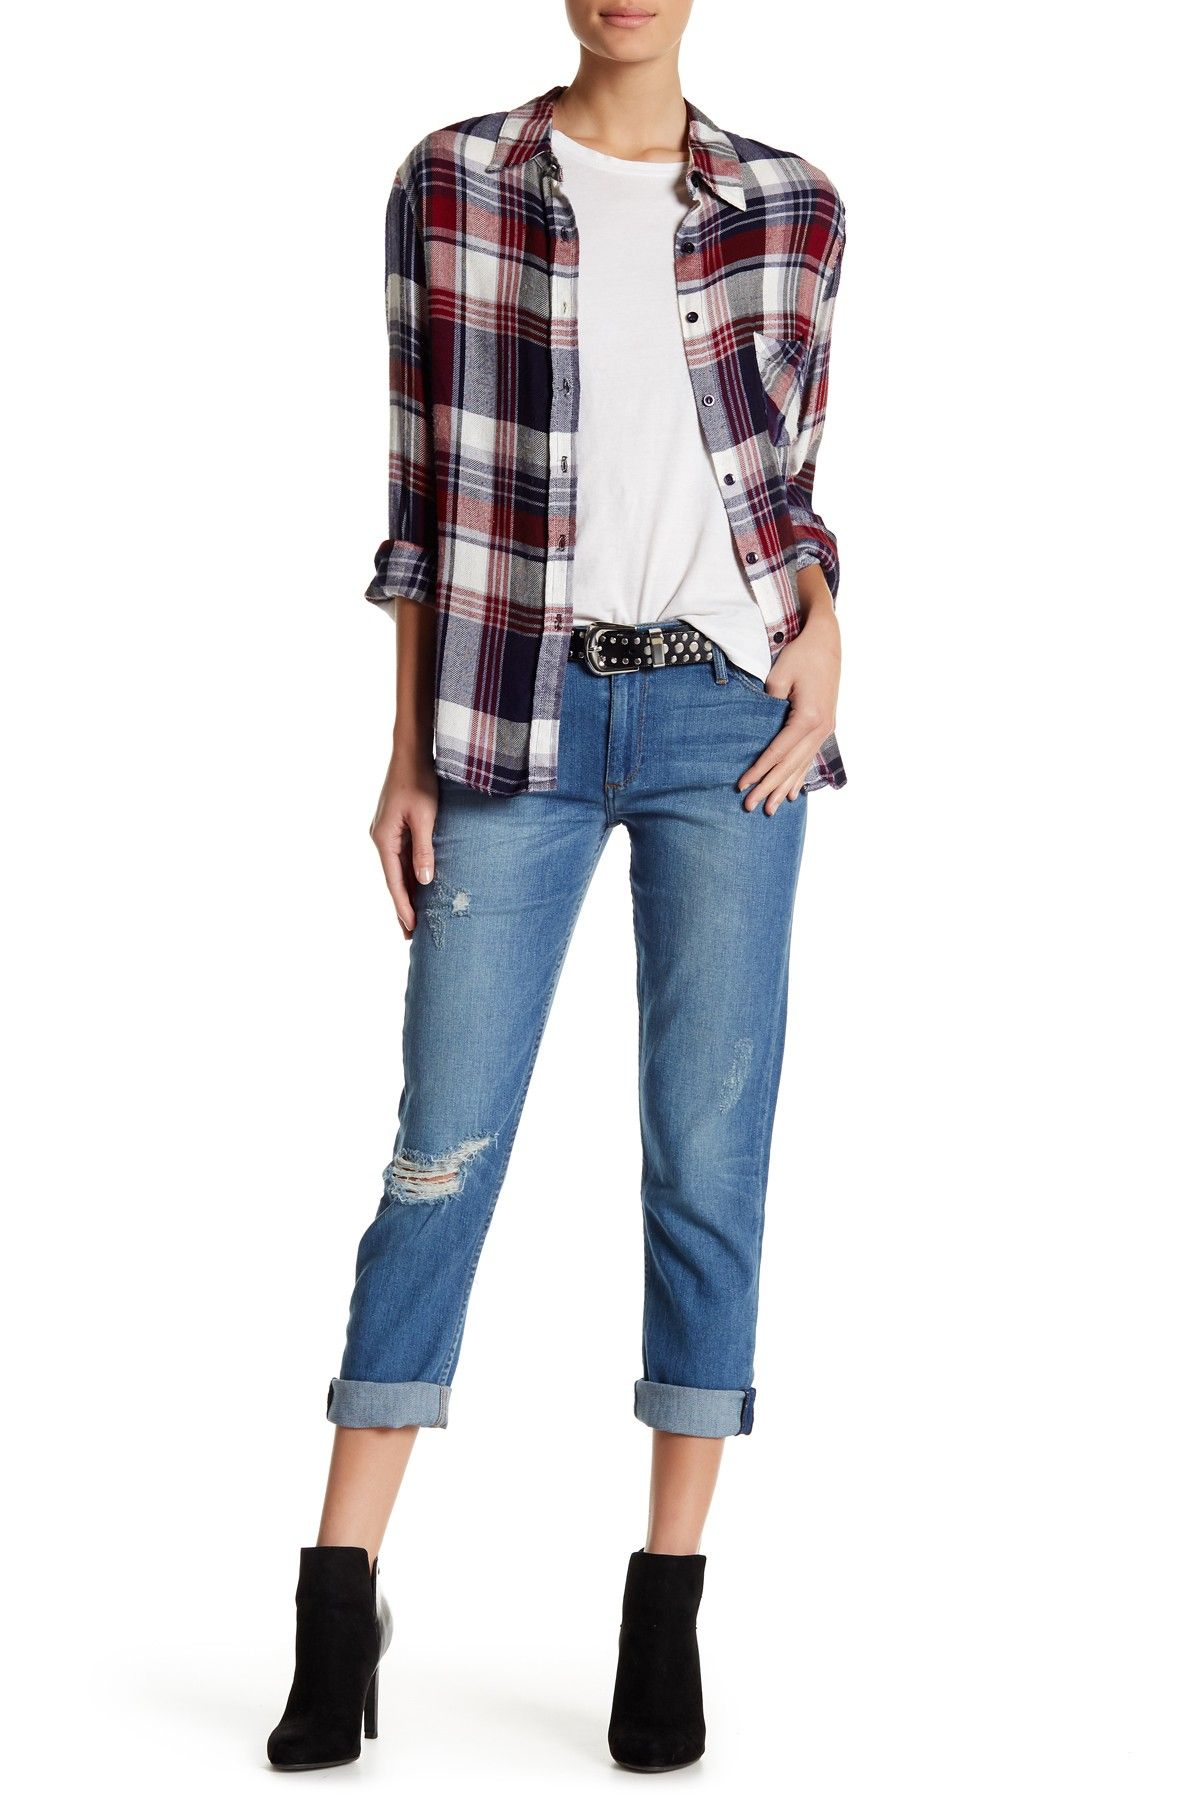 Hipster crop jean by black orchid on hautelook my style pinterest